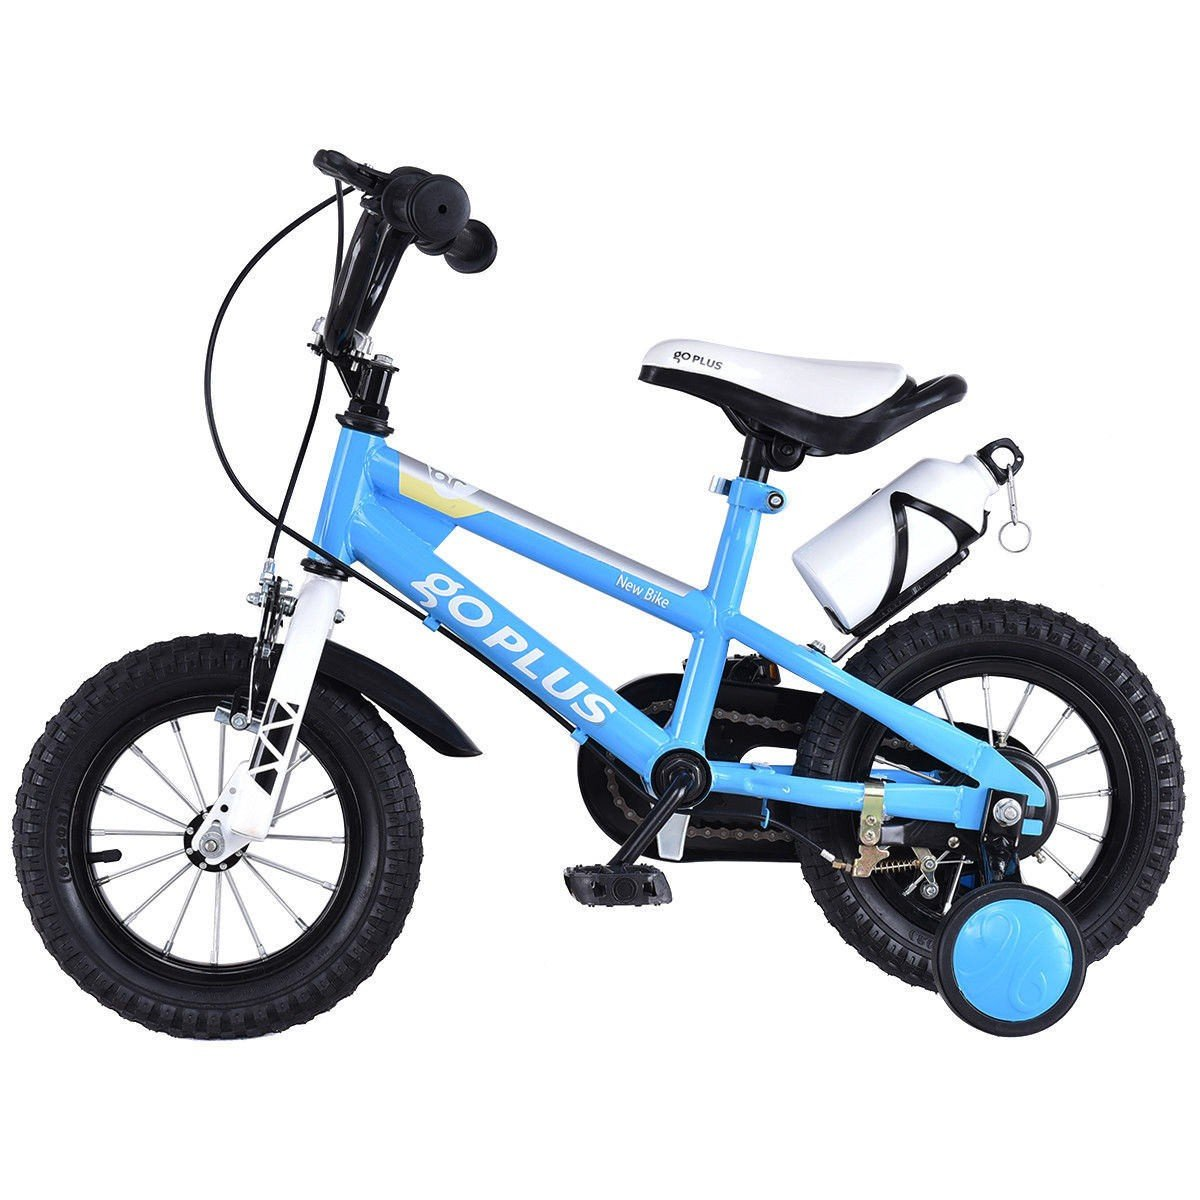 MD Group Kids Bicycle w/ Training Wheels Freestyle 16'' Blue Adjustable Children Xmas Gift by MD Group (Image #2)